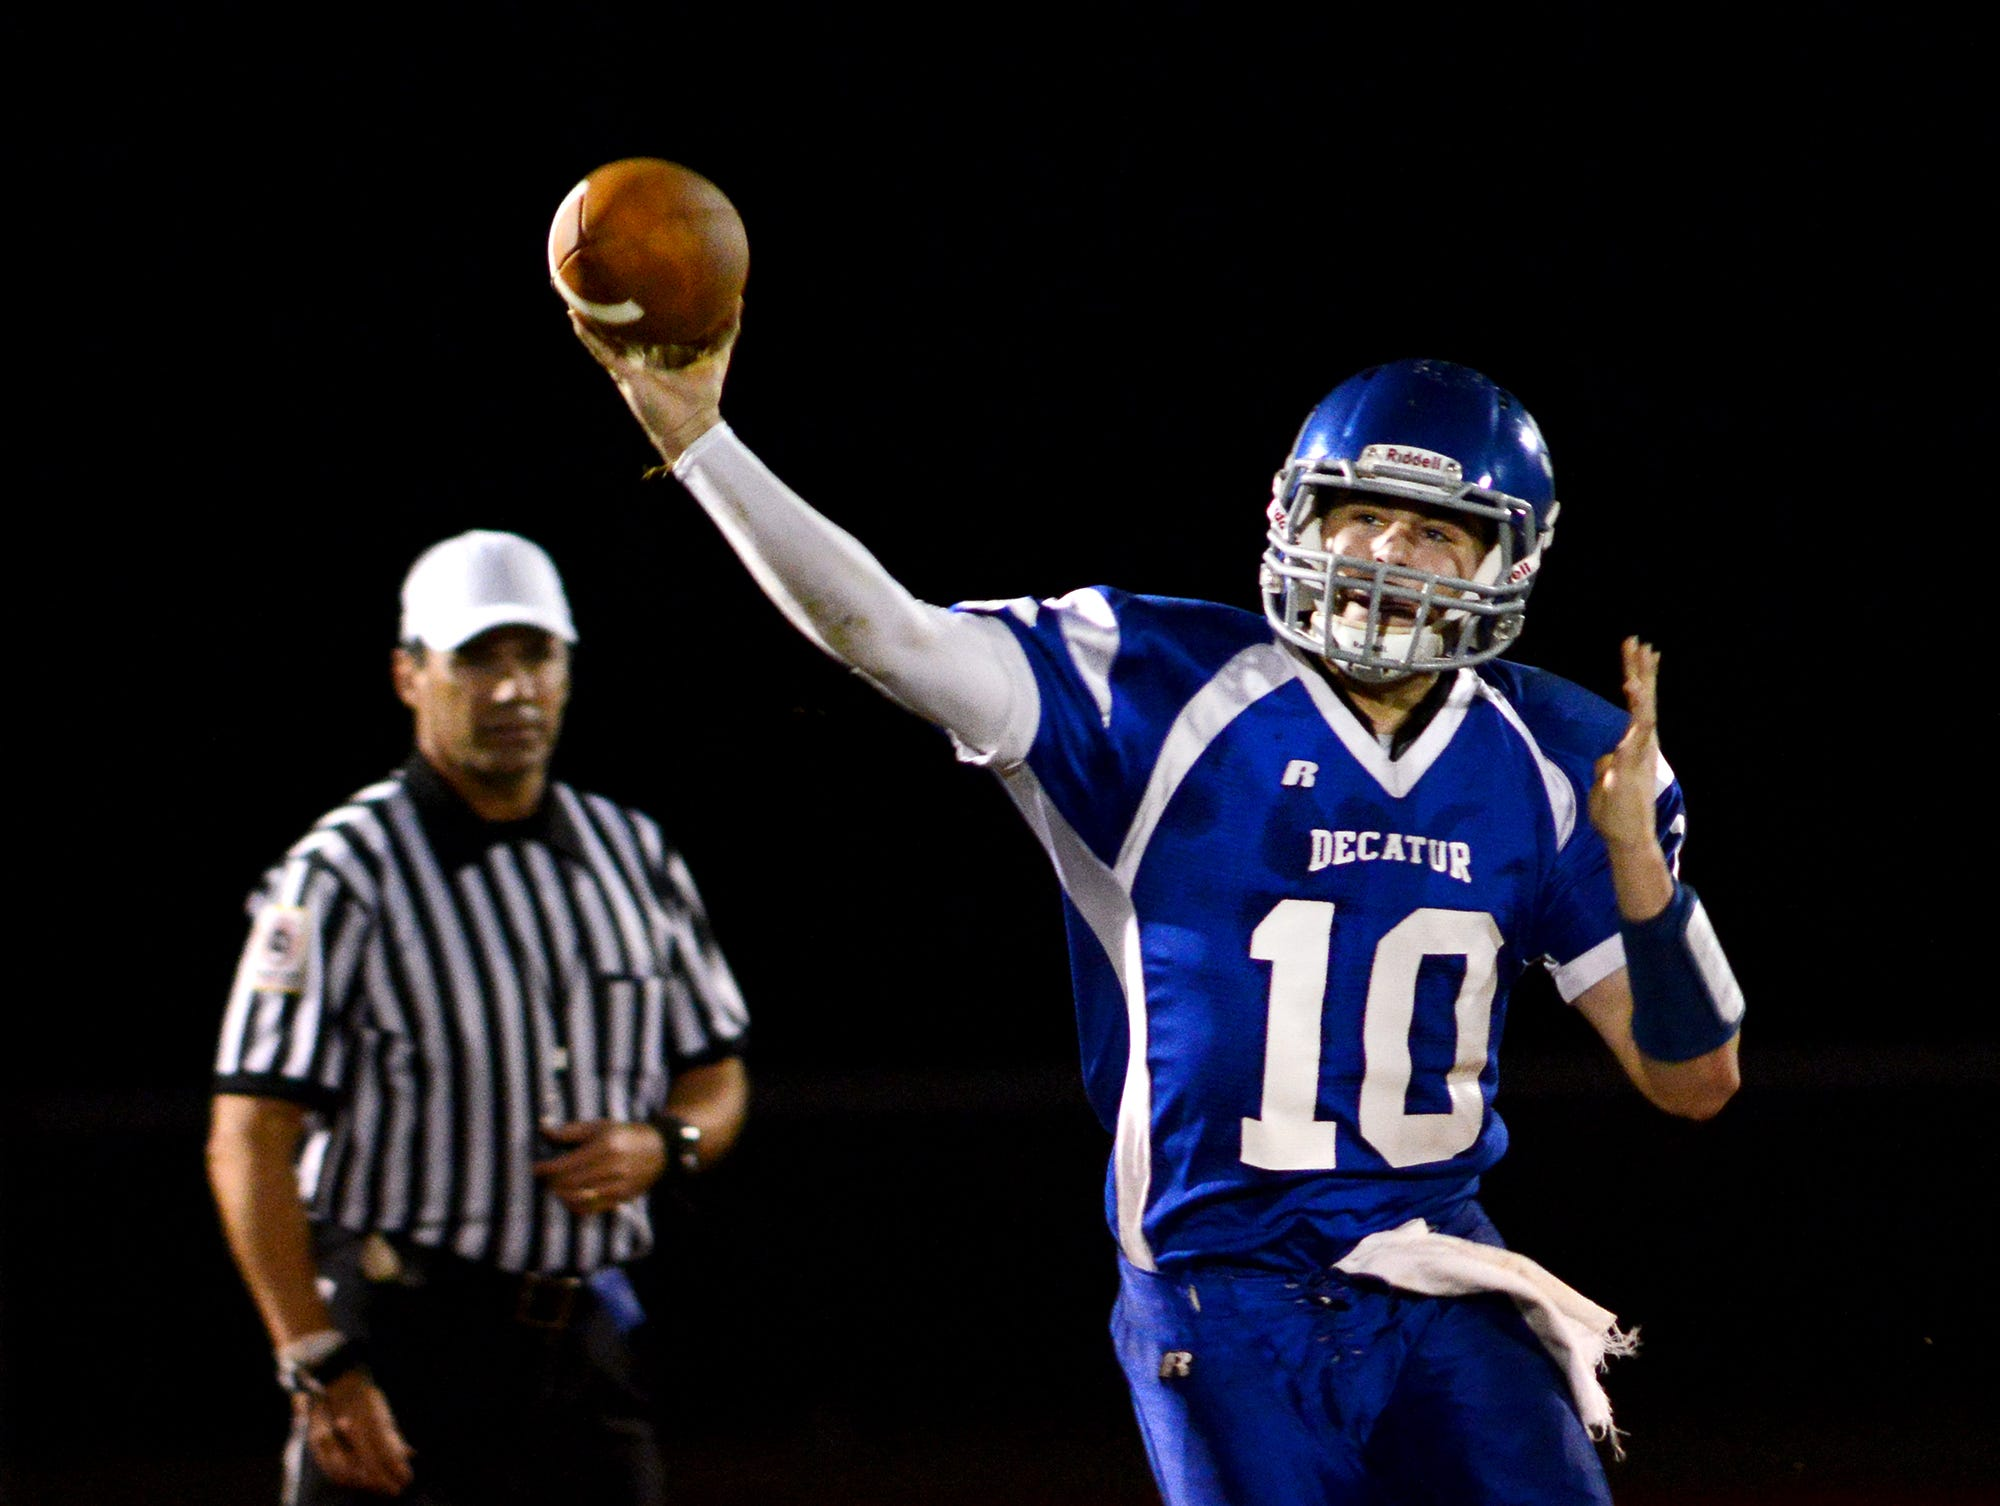 Decatur's Justin Meekins, now entering his senior year, passed for 843 yards and six scores and rushed for 515 yards and seven touchdowns in 2013.